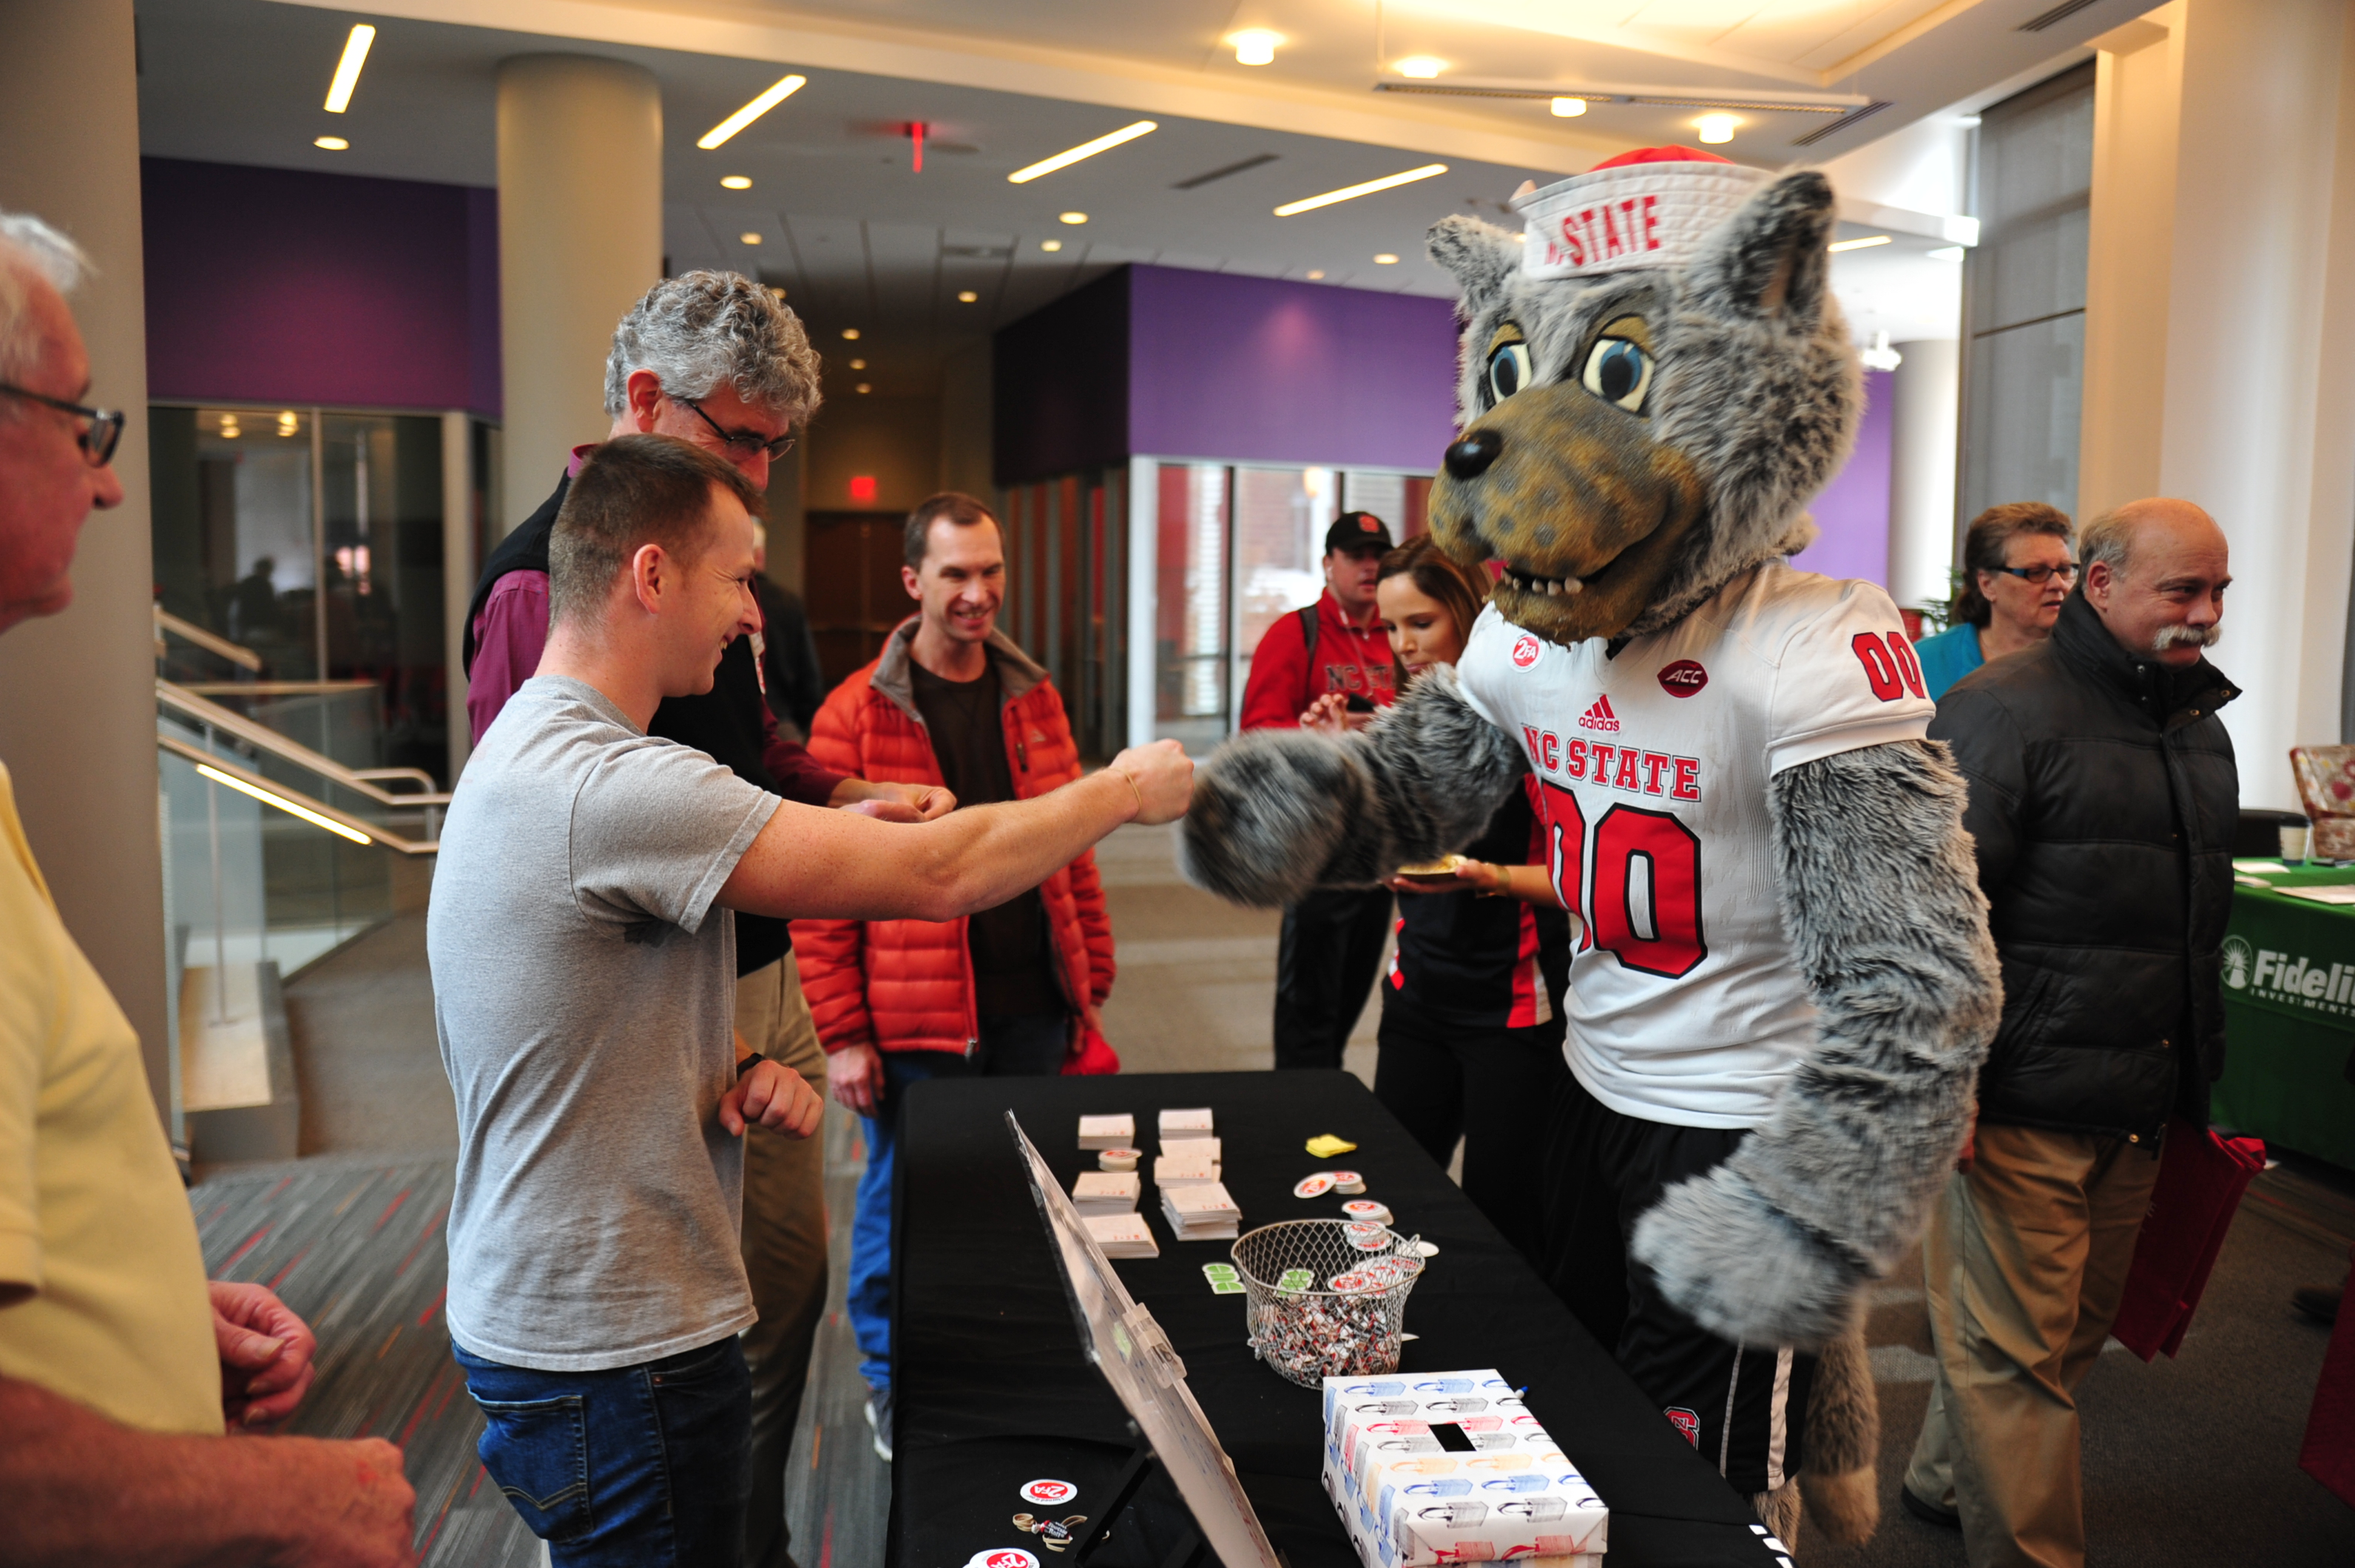 Chris Deaton fitst-bumps an NC State mascot.